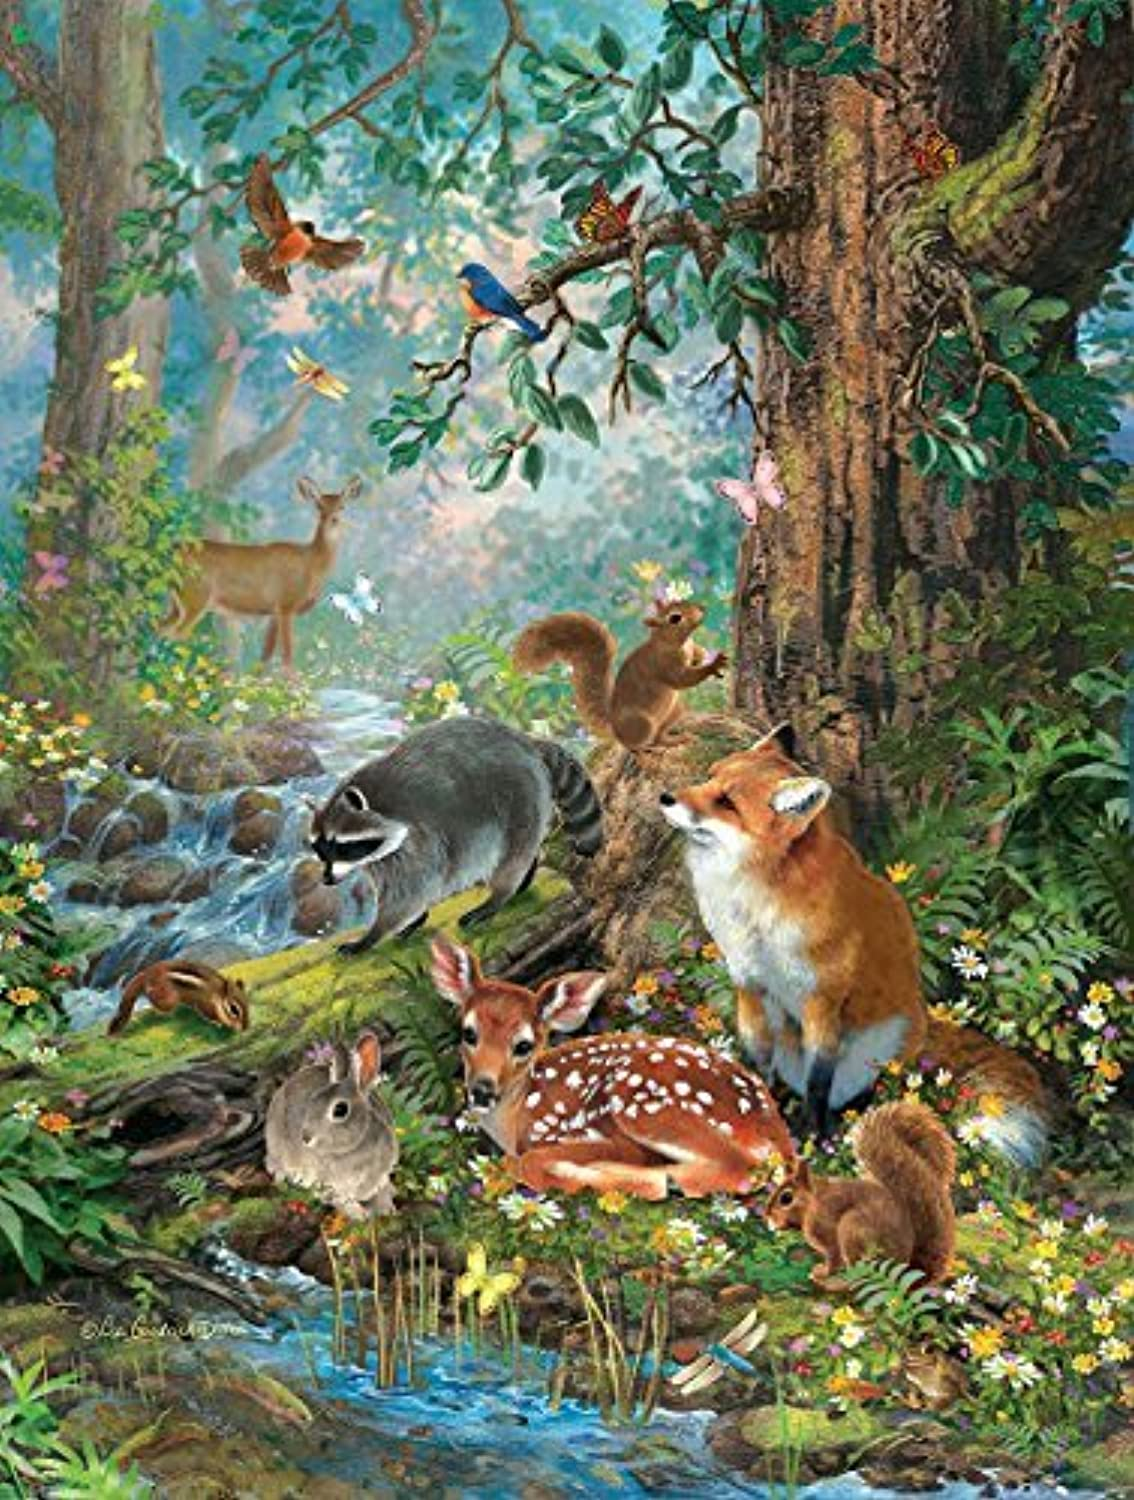 Woodland Forest Friends, A 300 Piece Jigsaw Puzzle by SunsOut by SunsOut